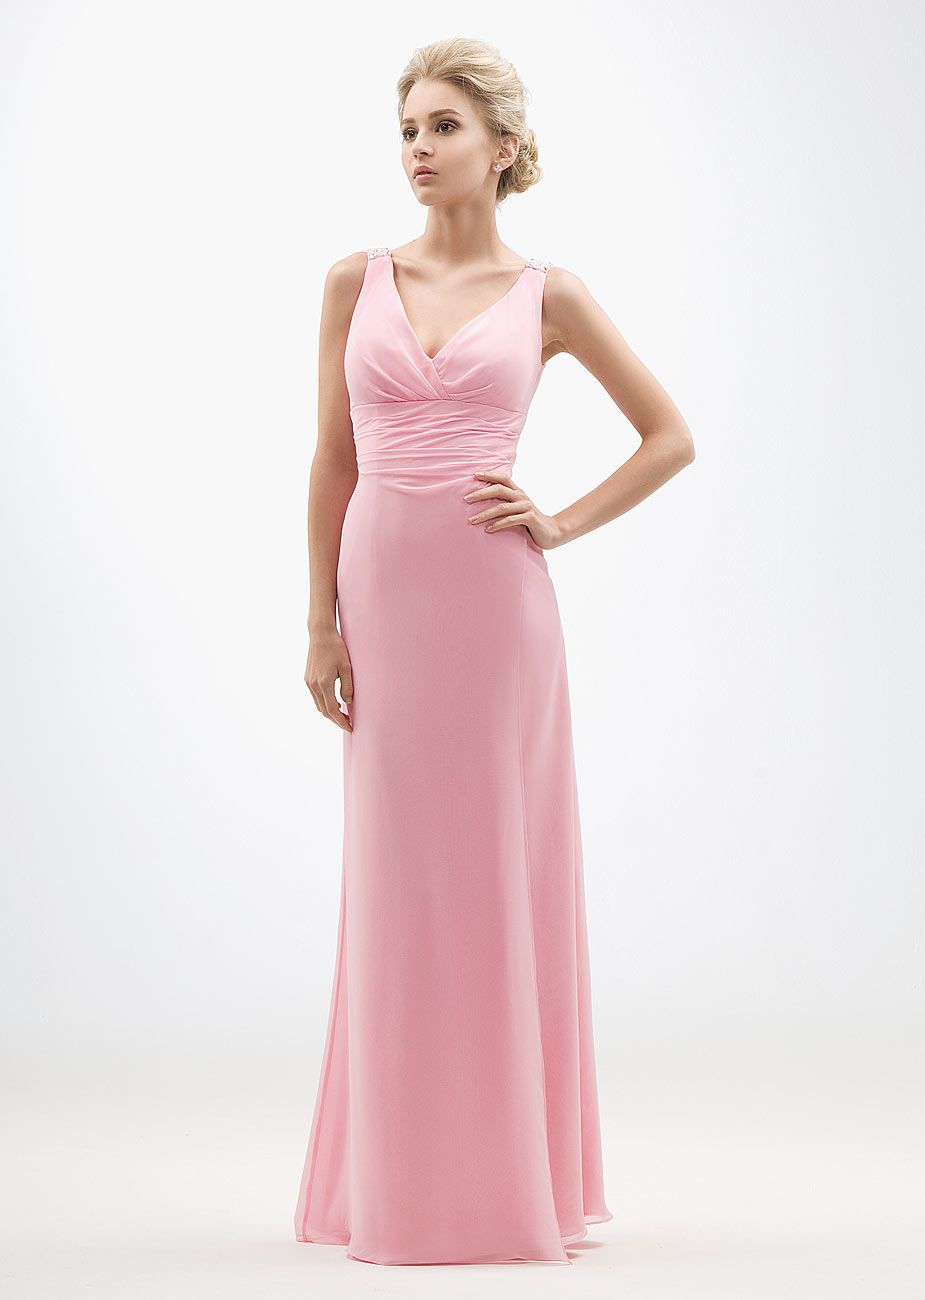 14883 by kelsey rose available at canterbury boutique teokath of 14883 by kelsey rose available at canterbury boutique teokath of london rose bridesmaid dressespink ombrellifo Images